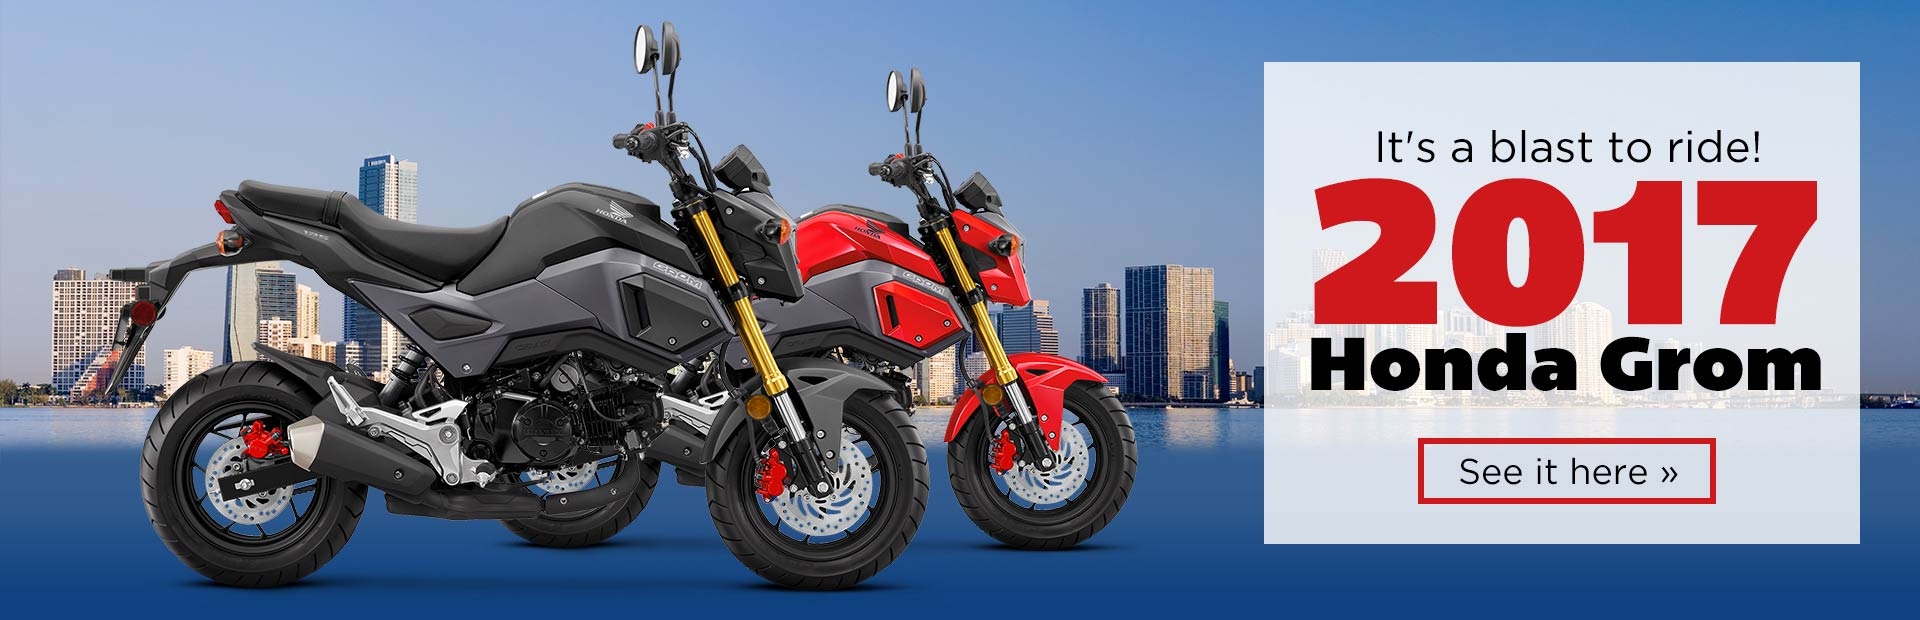 The 2017 Honda Grom Is A Blast To Ride Click Here View Model